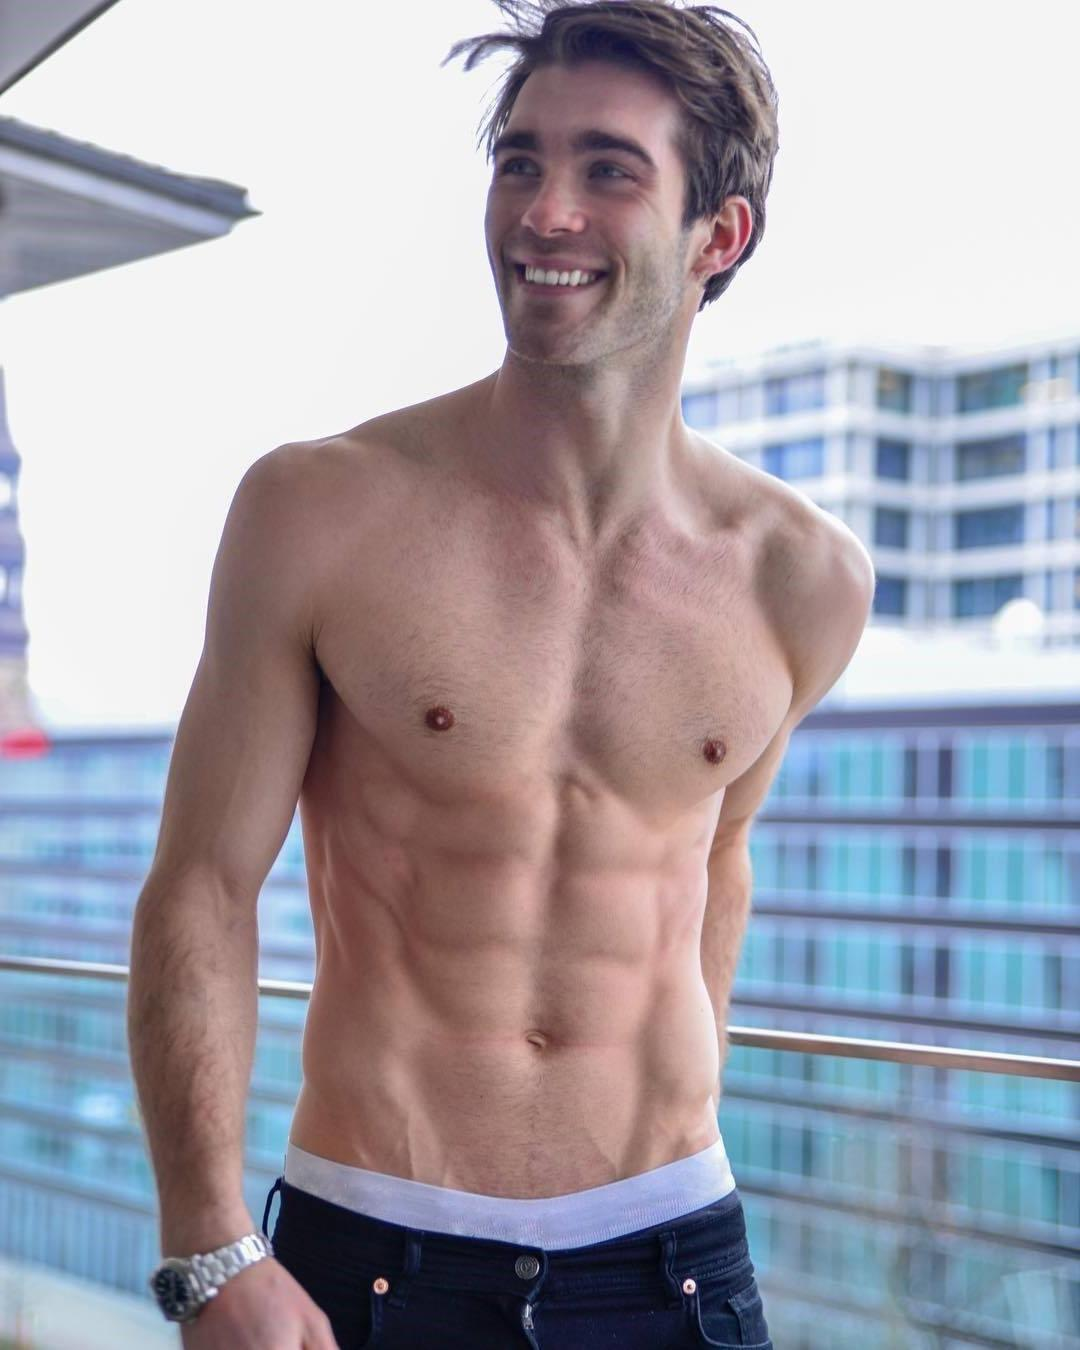 cute-shirtless-boys-smiling-janis-danner-hot-young-male-model-slim-pale-body